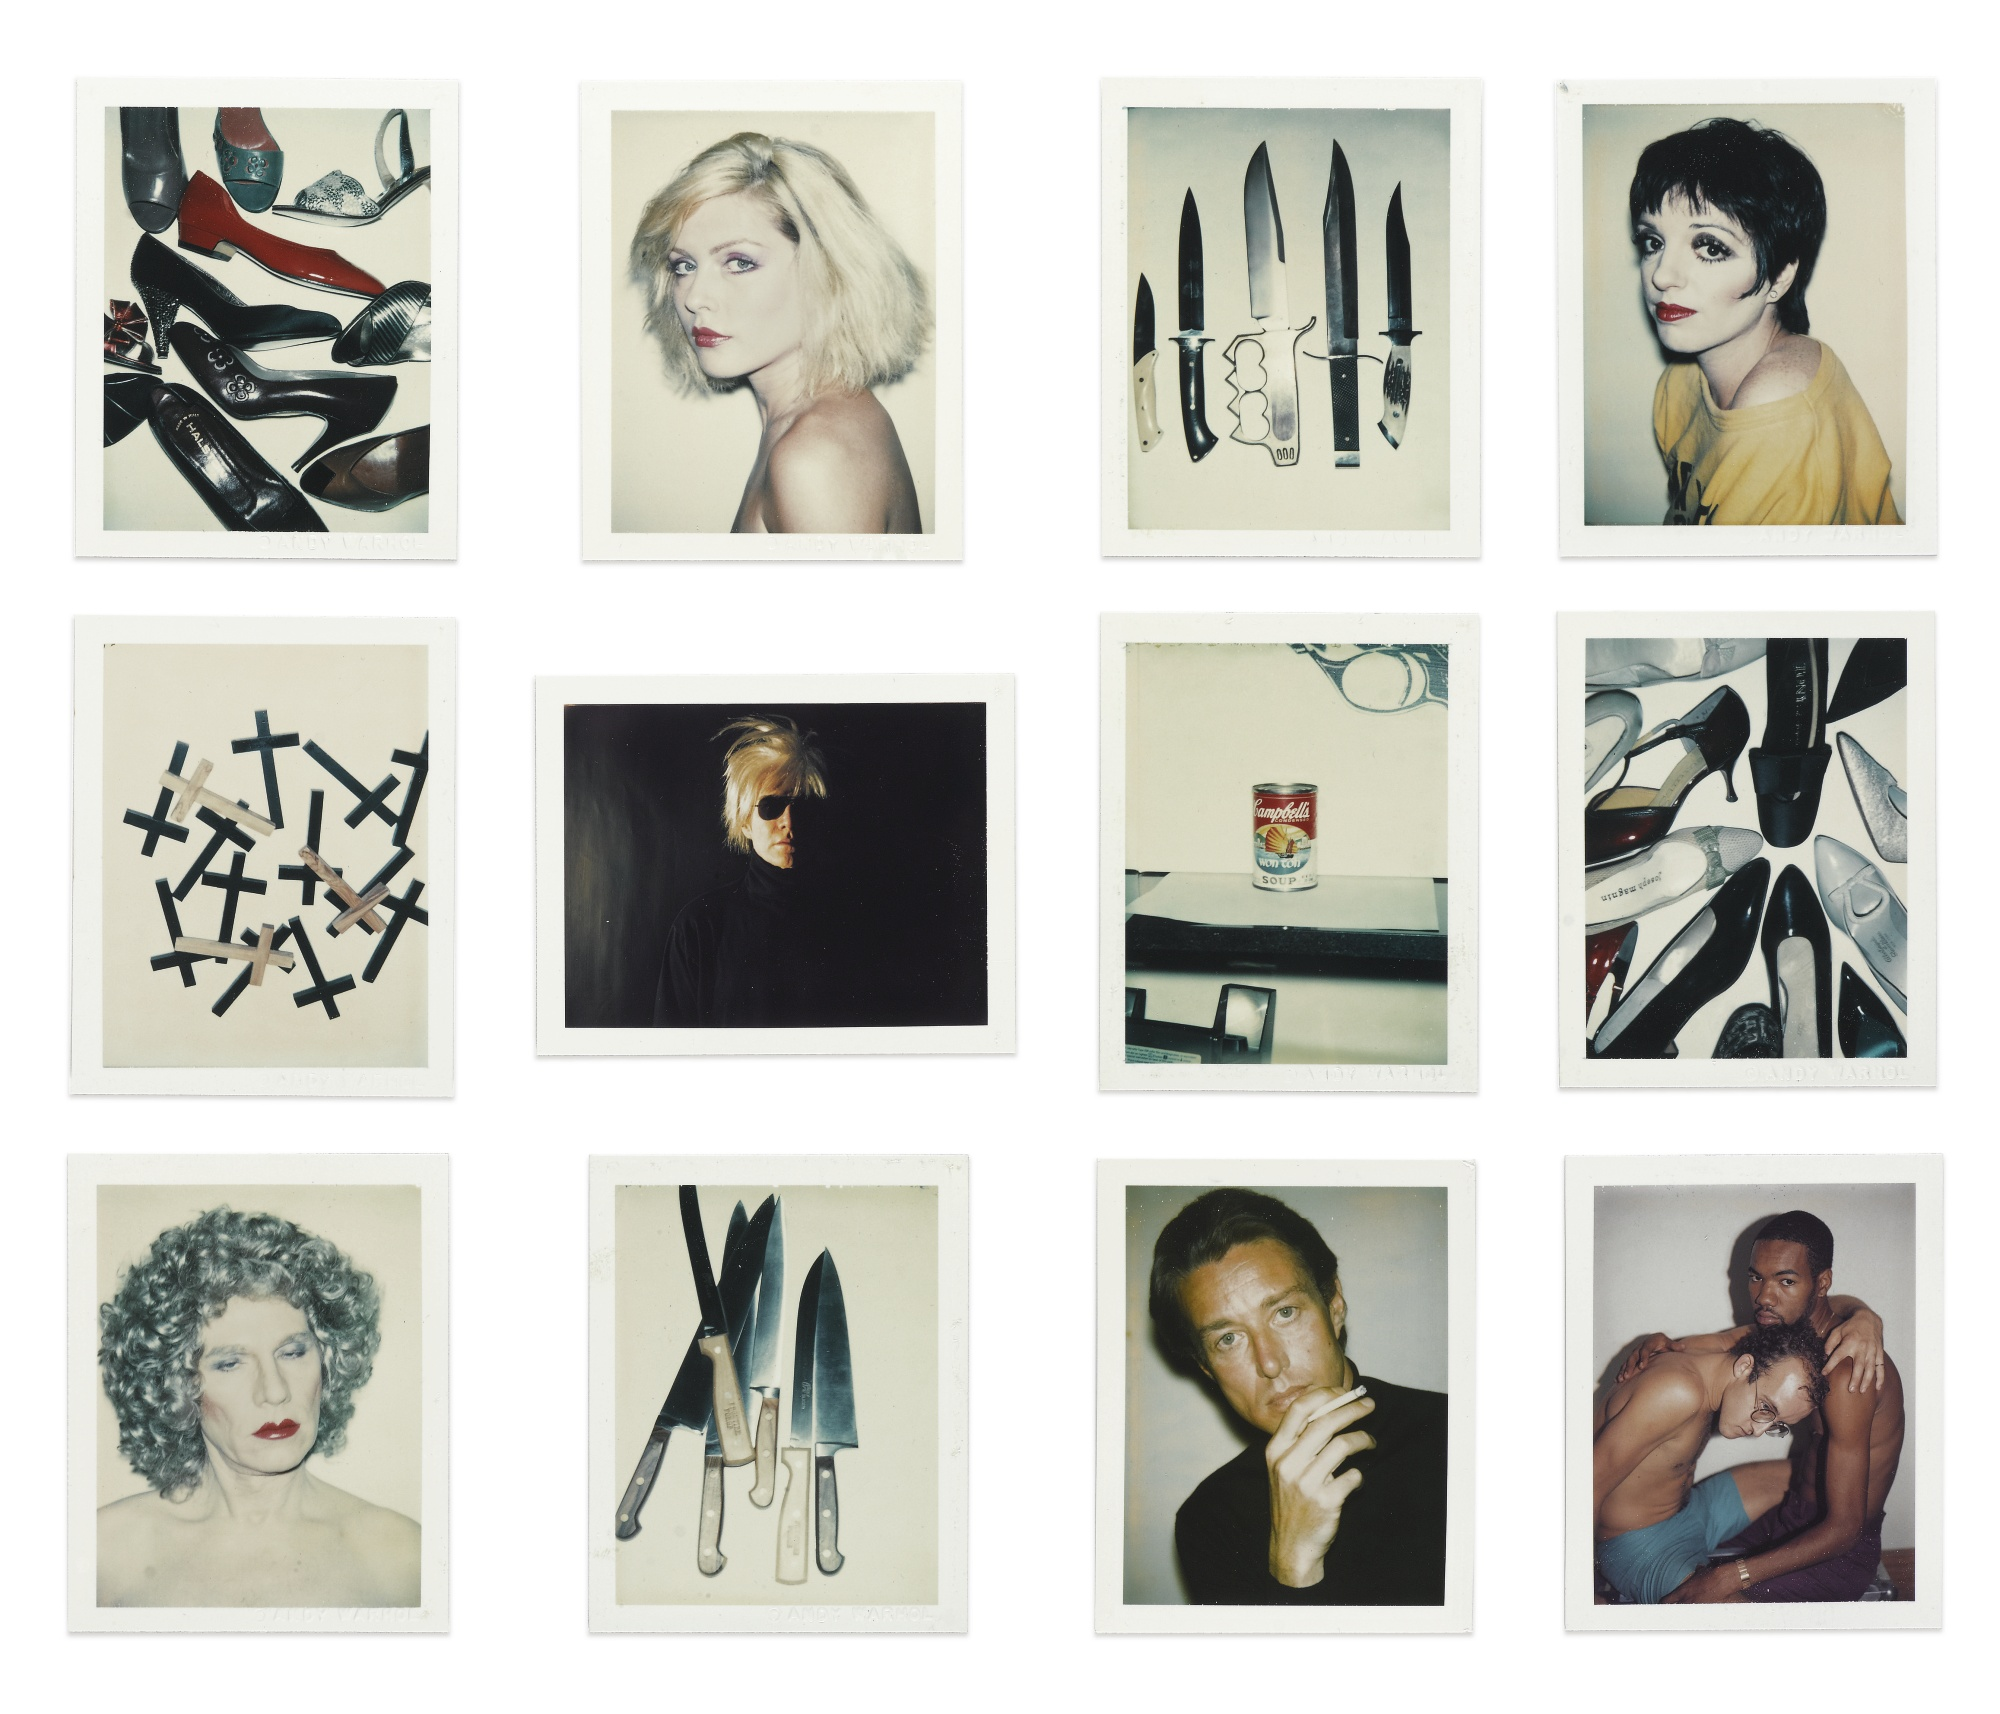 Andy Warhol-I. Shoes; II. Debbie Harry; III. Knives; IV. Liza Minelli; V. Crosses; VI. Self-Portrait With Fright Wig; VII. Campbell's Wonton Soup; VIII. Shoes; IX. Self-Portrait In Drag; X. Knives; XI. Halston; XII. Keith Haring And Juan Dubose [Twelve Works]-1986